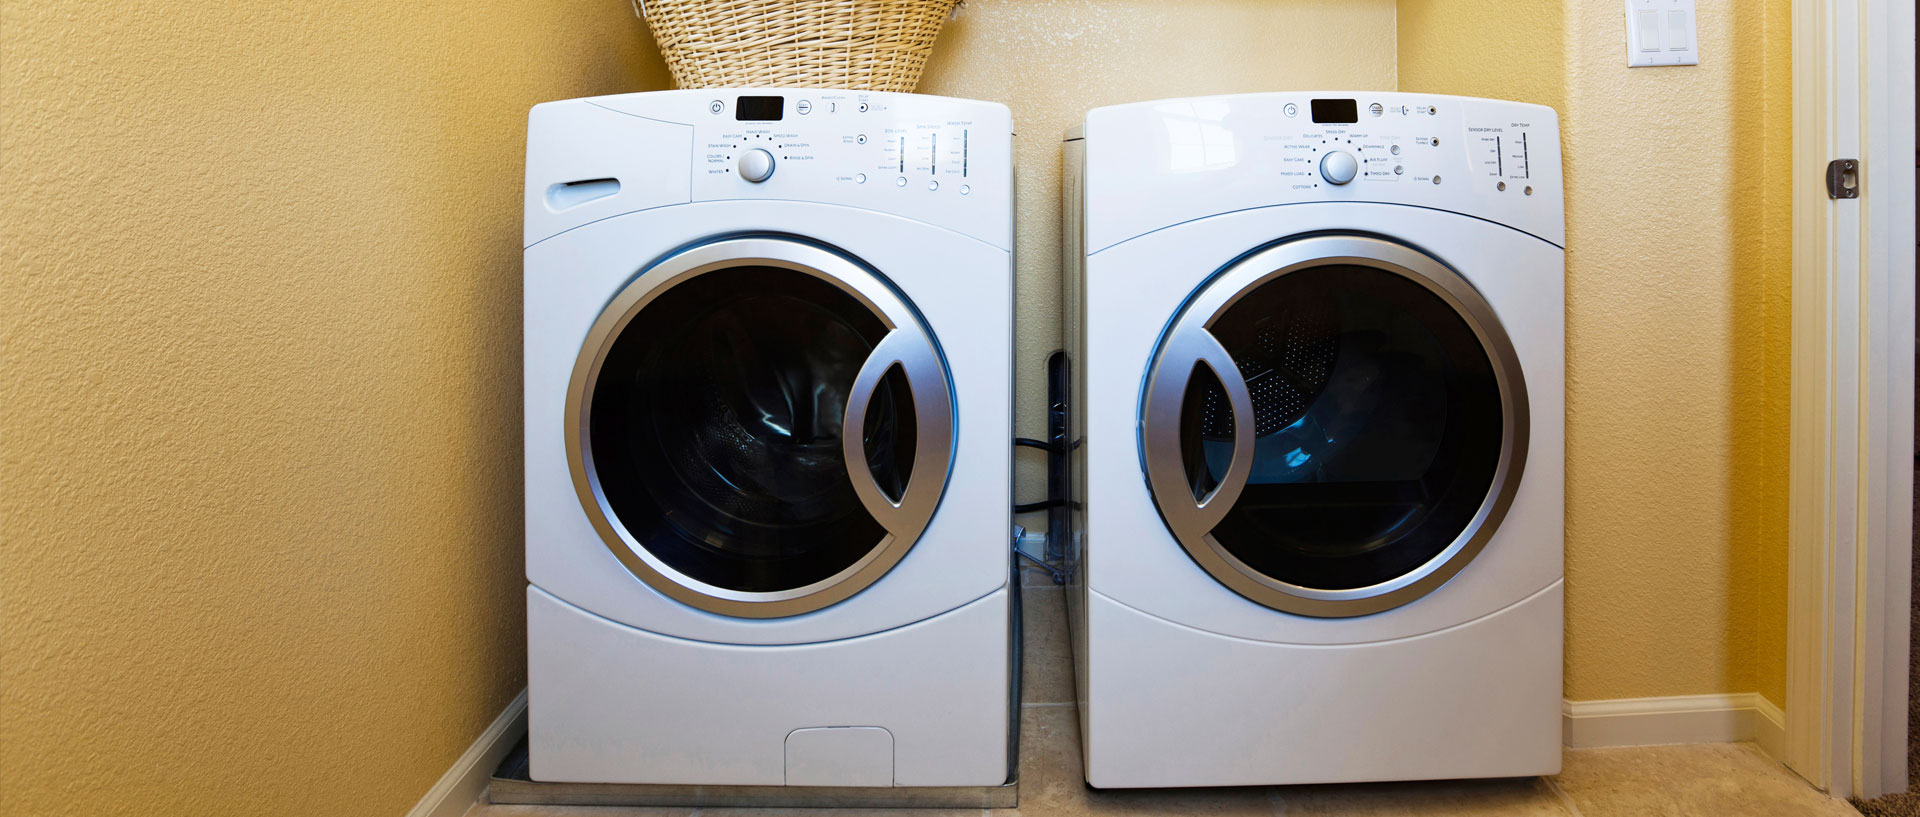 Washer and dryer sets that match your budget consumer reports - Small space washing machines set ...